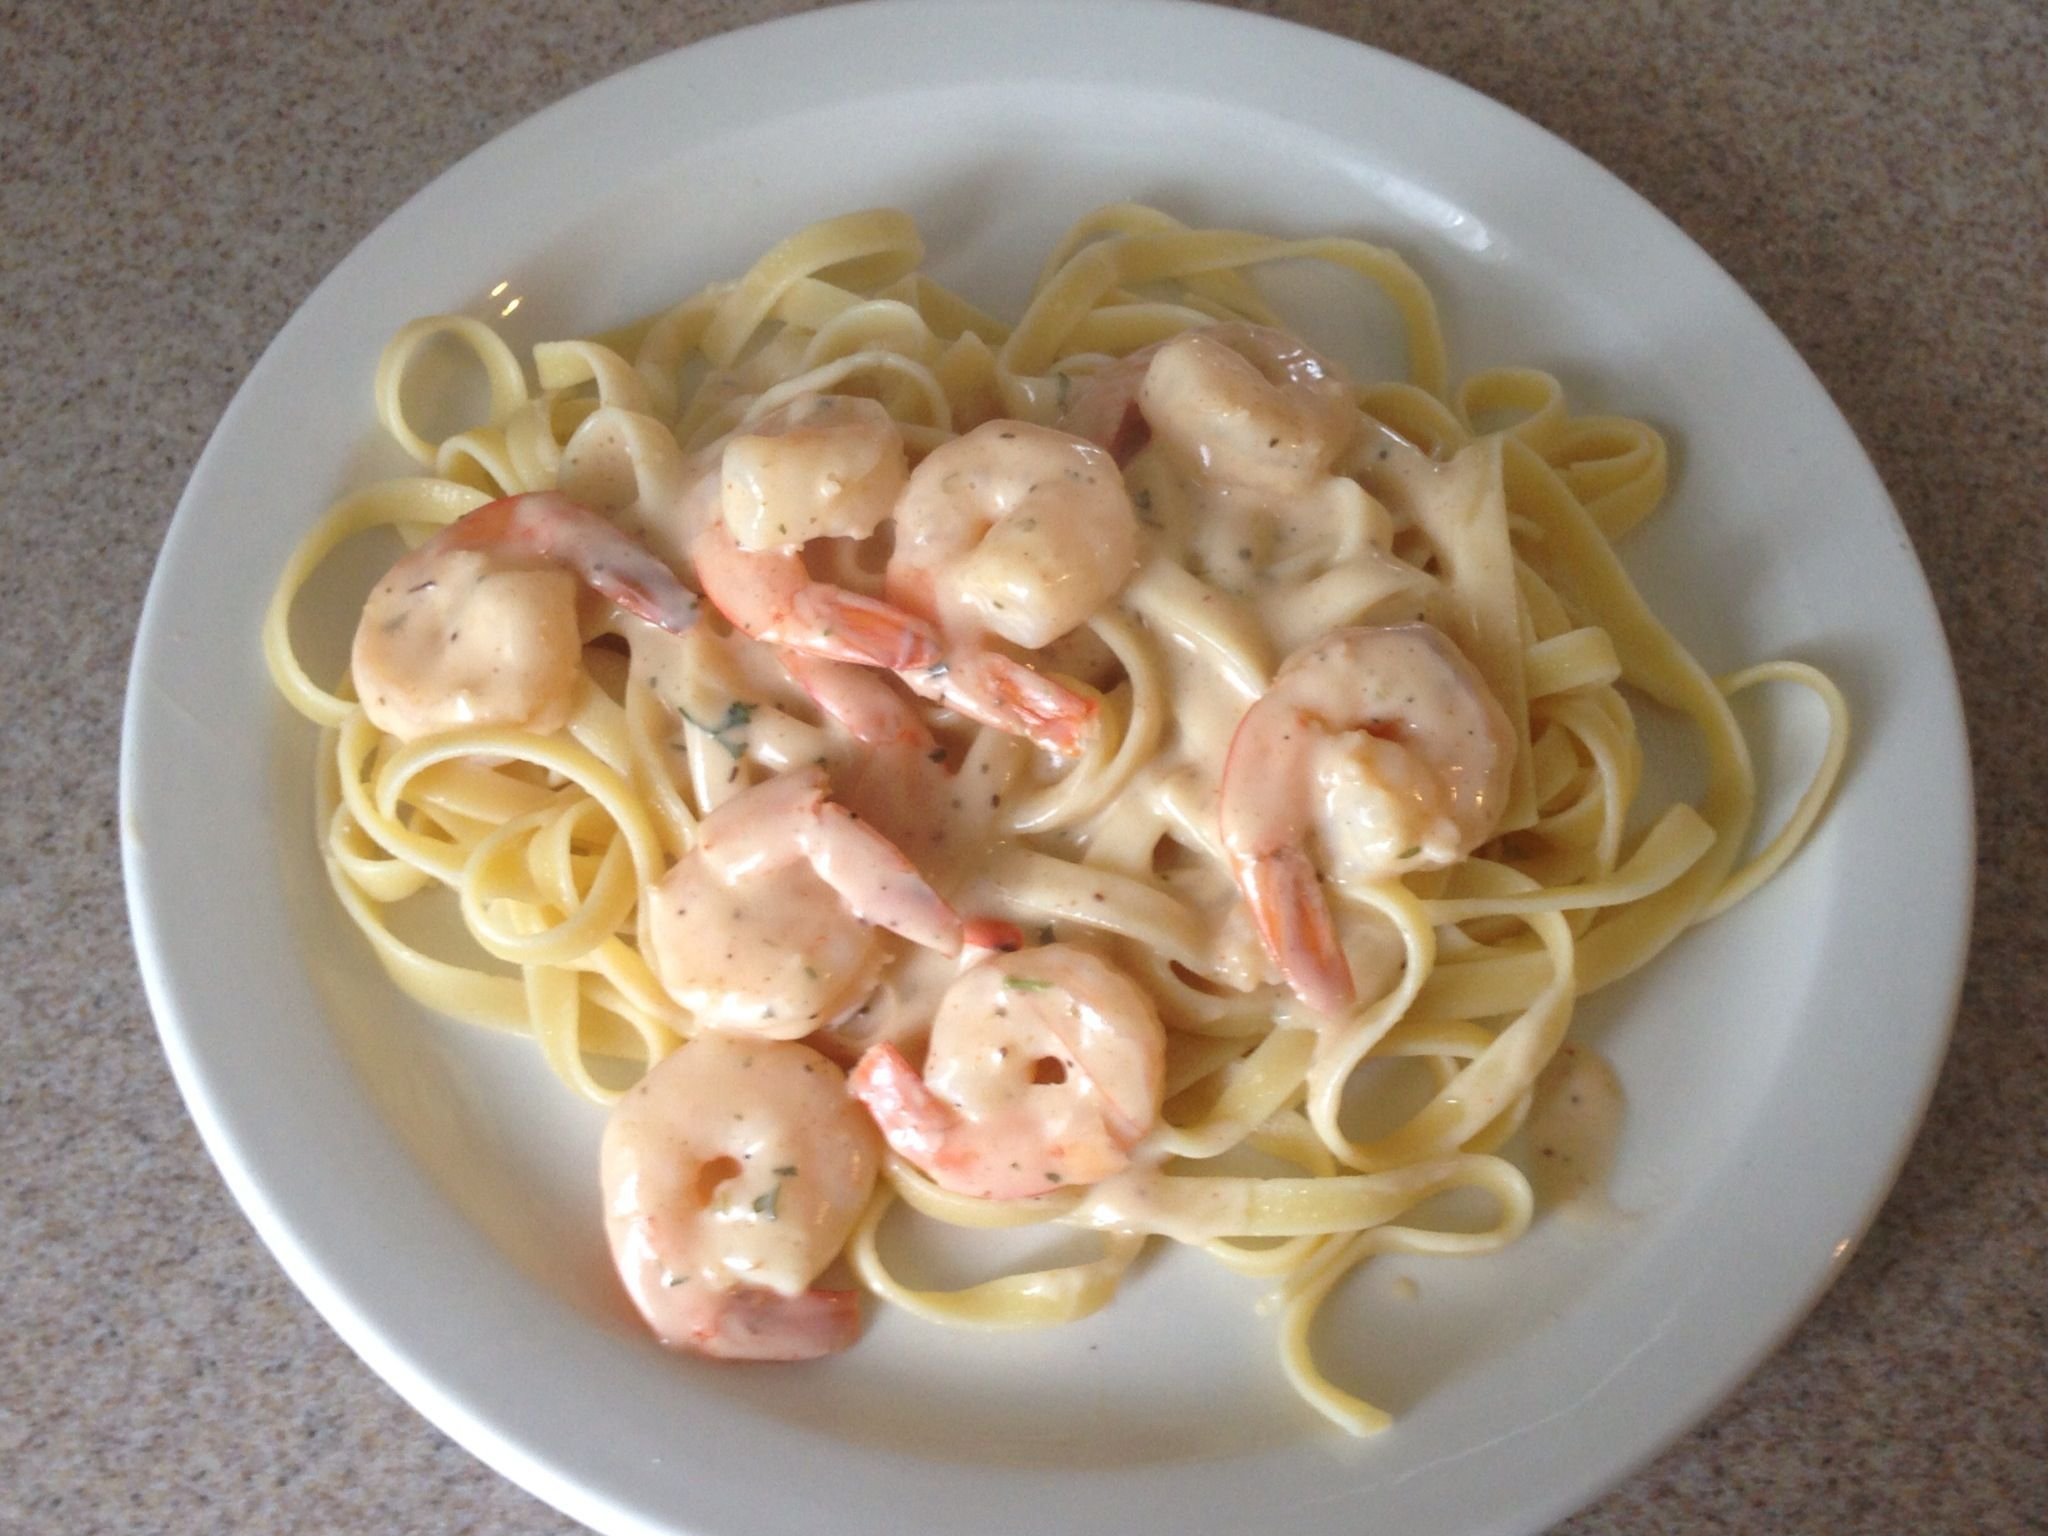 #fettuccine #downfall #alfredo #shrimp #days #made #this #love #dish #eat #and #ate #for #can #isI love made and ate Shrimp Fettuccine Alfredo. This is my downfall dish and I can eat it for days!!! #shrimpfettuccine #fettuccine #downfall #alfredo #shrimp #days #made #this #love #dish #eat #and #ate #for #can #isI love made and ate Shrimp Fettuccine Alfredo. This is my downfall dish and I can eat it for days!!! #shrimpfettuccine